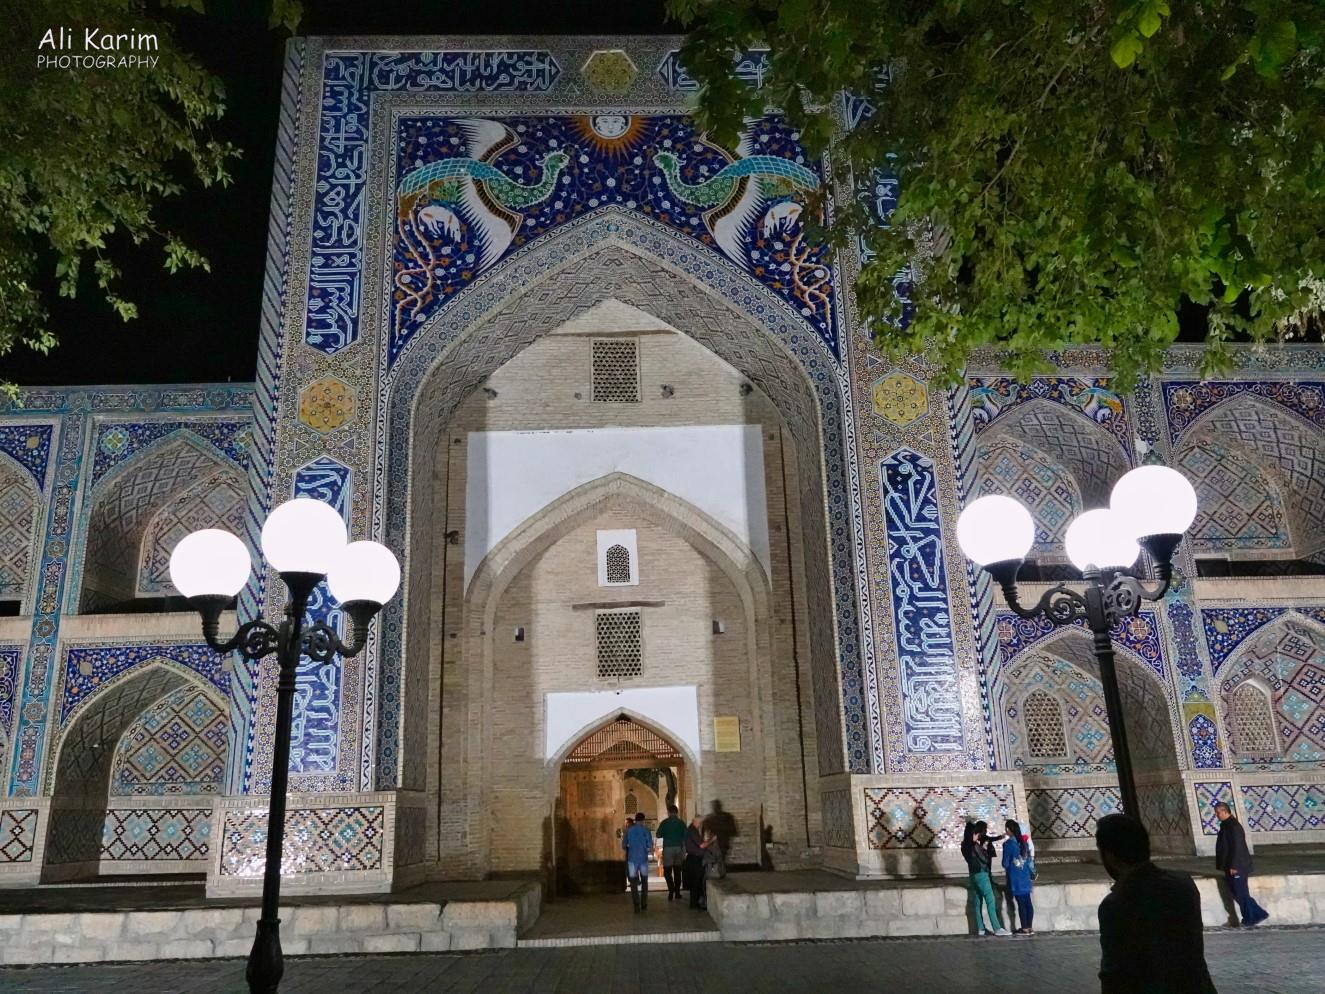 Bukhara, Oct 2019, The 16th Century Nadir Divan-Beghi Madrasah in the north end of the main square, just outside out hotel. Note the intricate mosaic tilework at the top of the archway, of the Simurgh, a mythical Persian bird, a symbol of benevolence and fertility